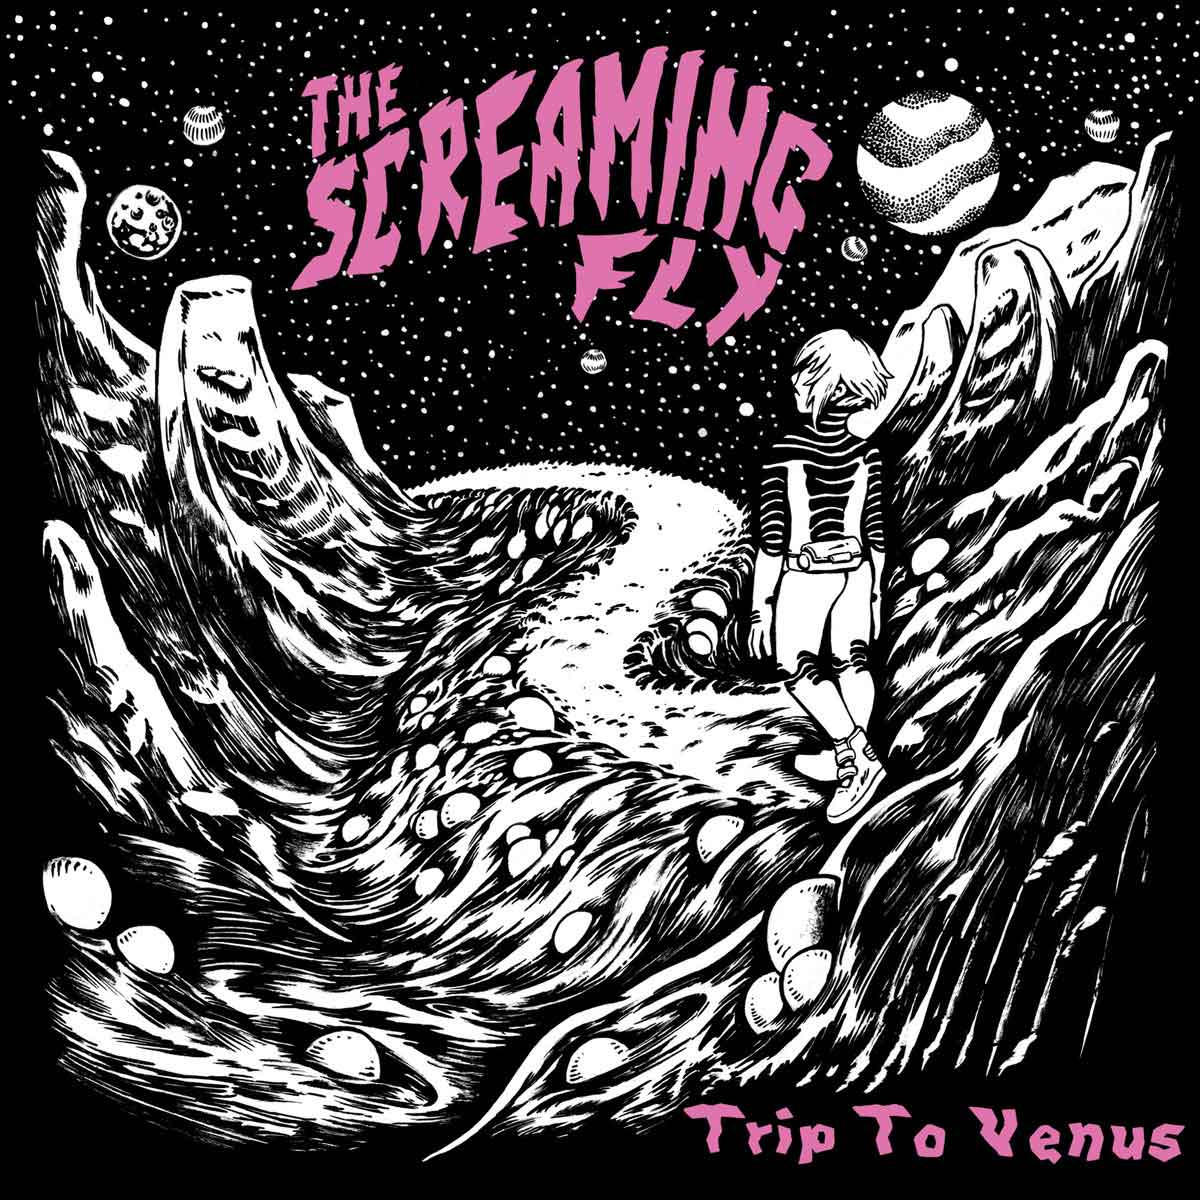 TimeMachine Productions » THE SCREAMING FLY – Trip To Venus